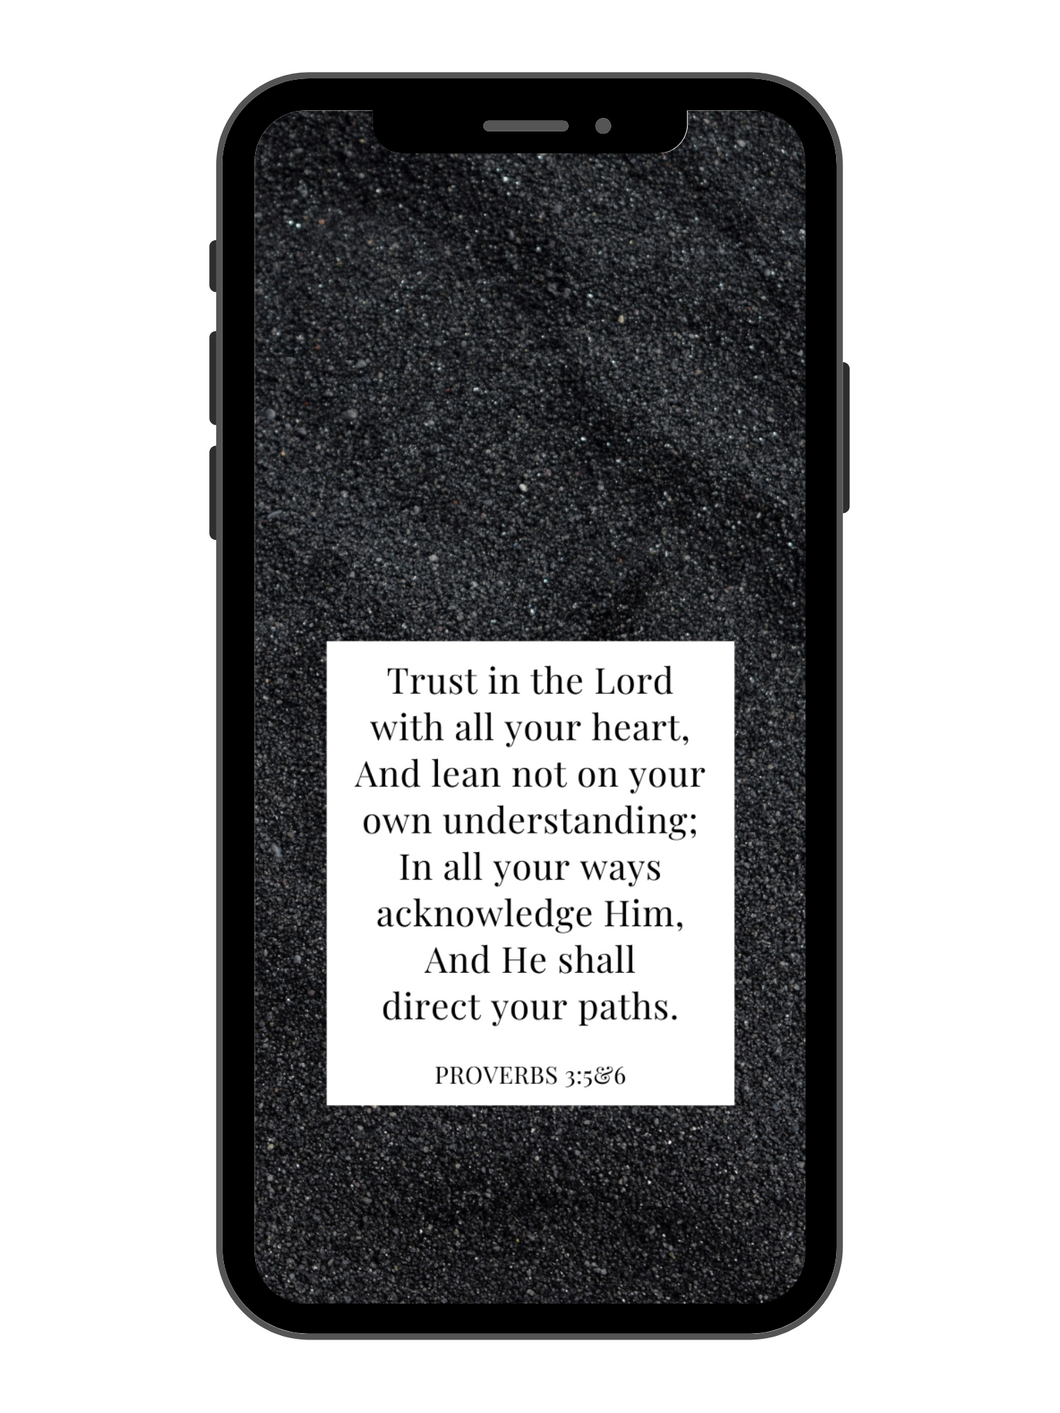 iPhone Wallpaper - Proverbs 3:5&6 - Black Sand